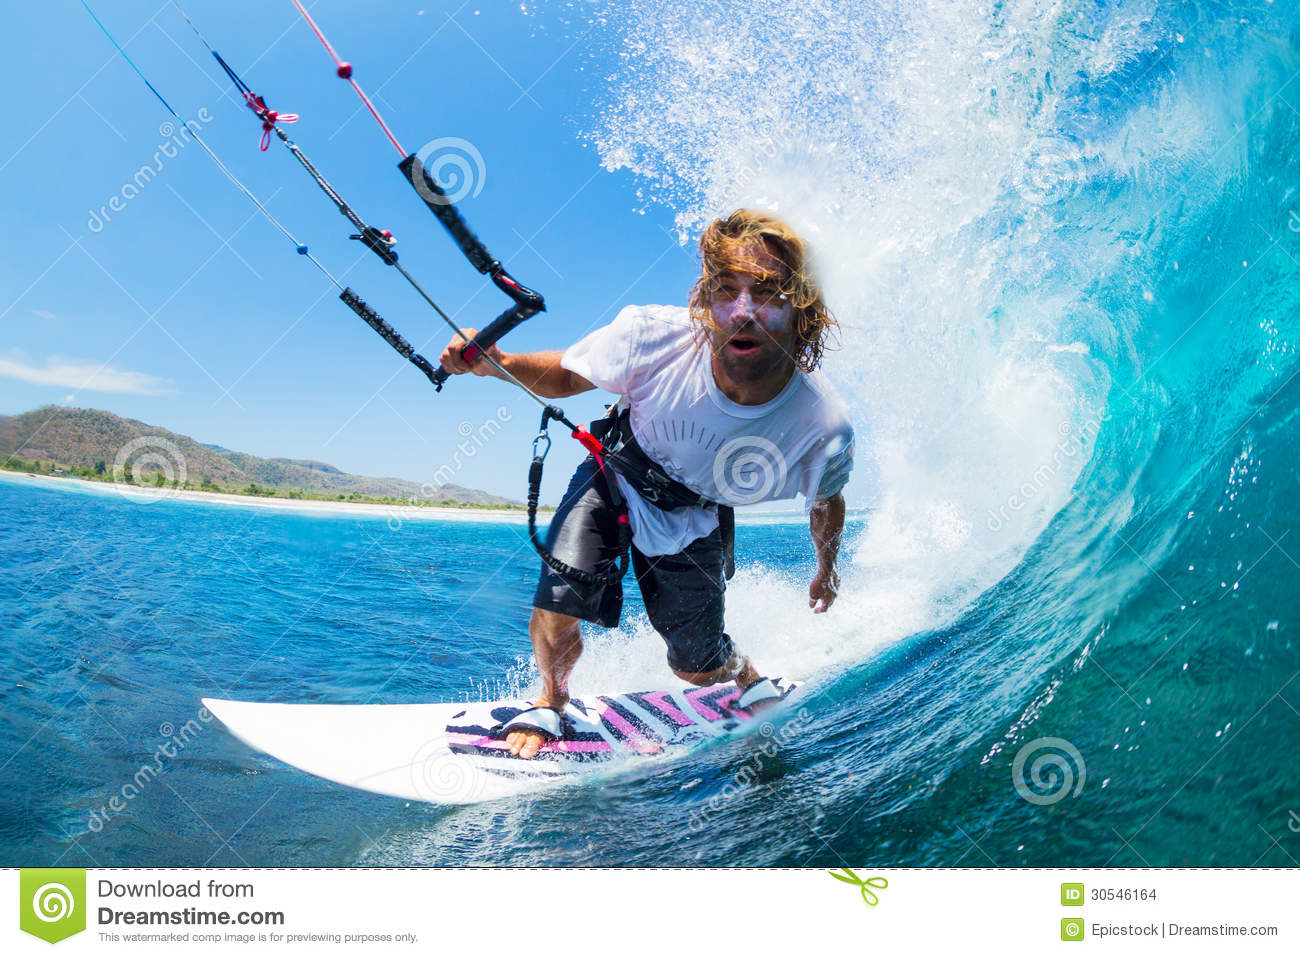 Extreme Sport, Kite Surfer Riding Wave getting Barreled.